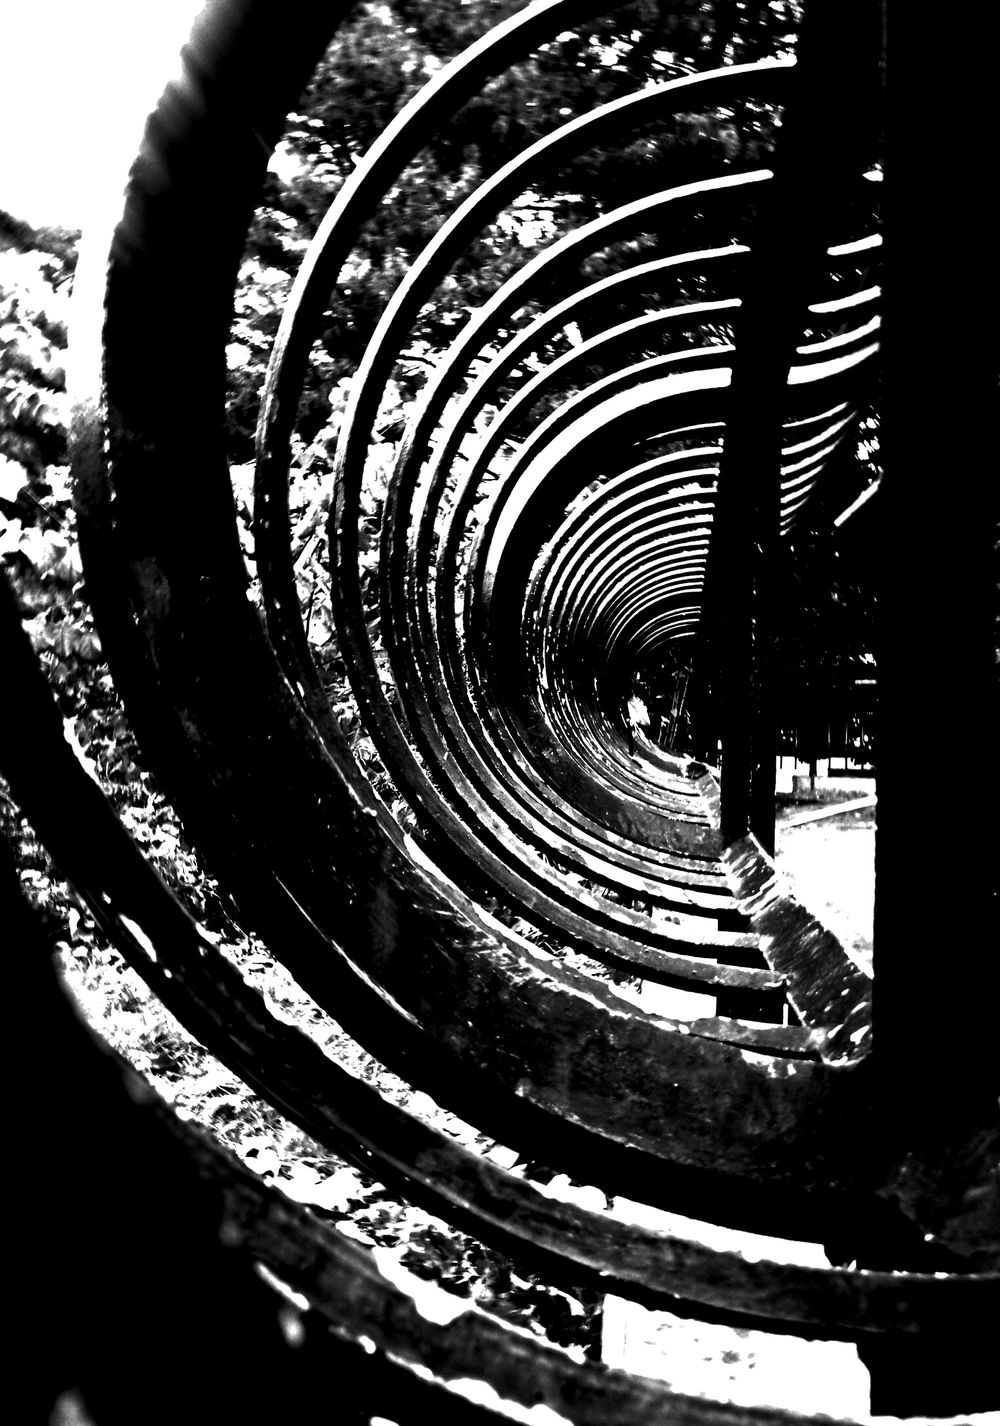 """New Theory"" by edemirbarrosfotografi EyeEm Black&white! First Eyeem Photo Newyorkcity Central Park Nycprimeshot Hello World Futuristic IloveBlackAndWhite Darkness And Light My View Eyem Gallery NYC Street PhotographyAbstractarchitecture A Black And White Day I Love My City Minimalism My View This Morning.. My Vision Artwork My Village In My Zone PicArt ArtInMyLife I Love Art Monochrome Light And Shadow"